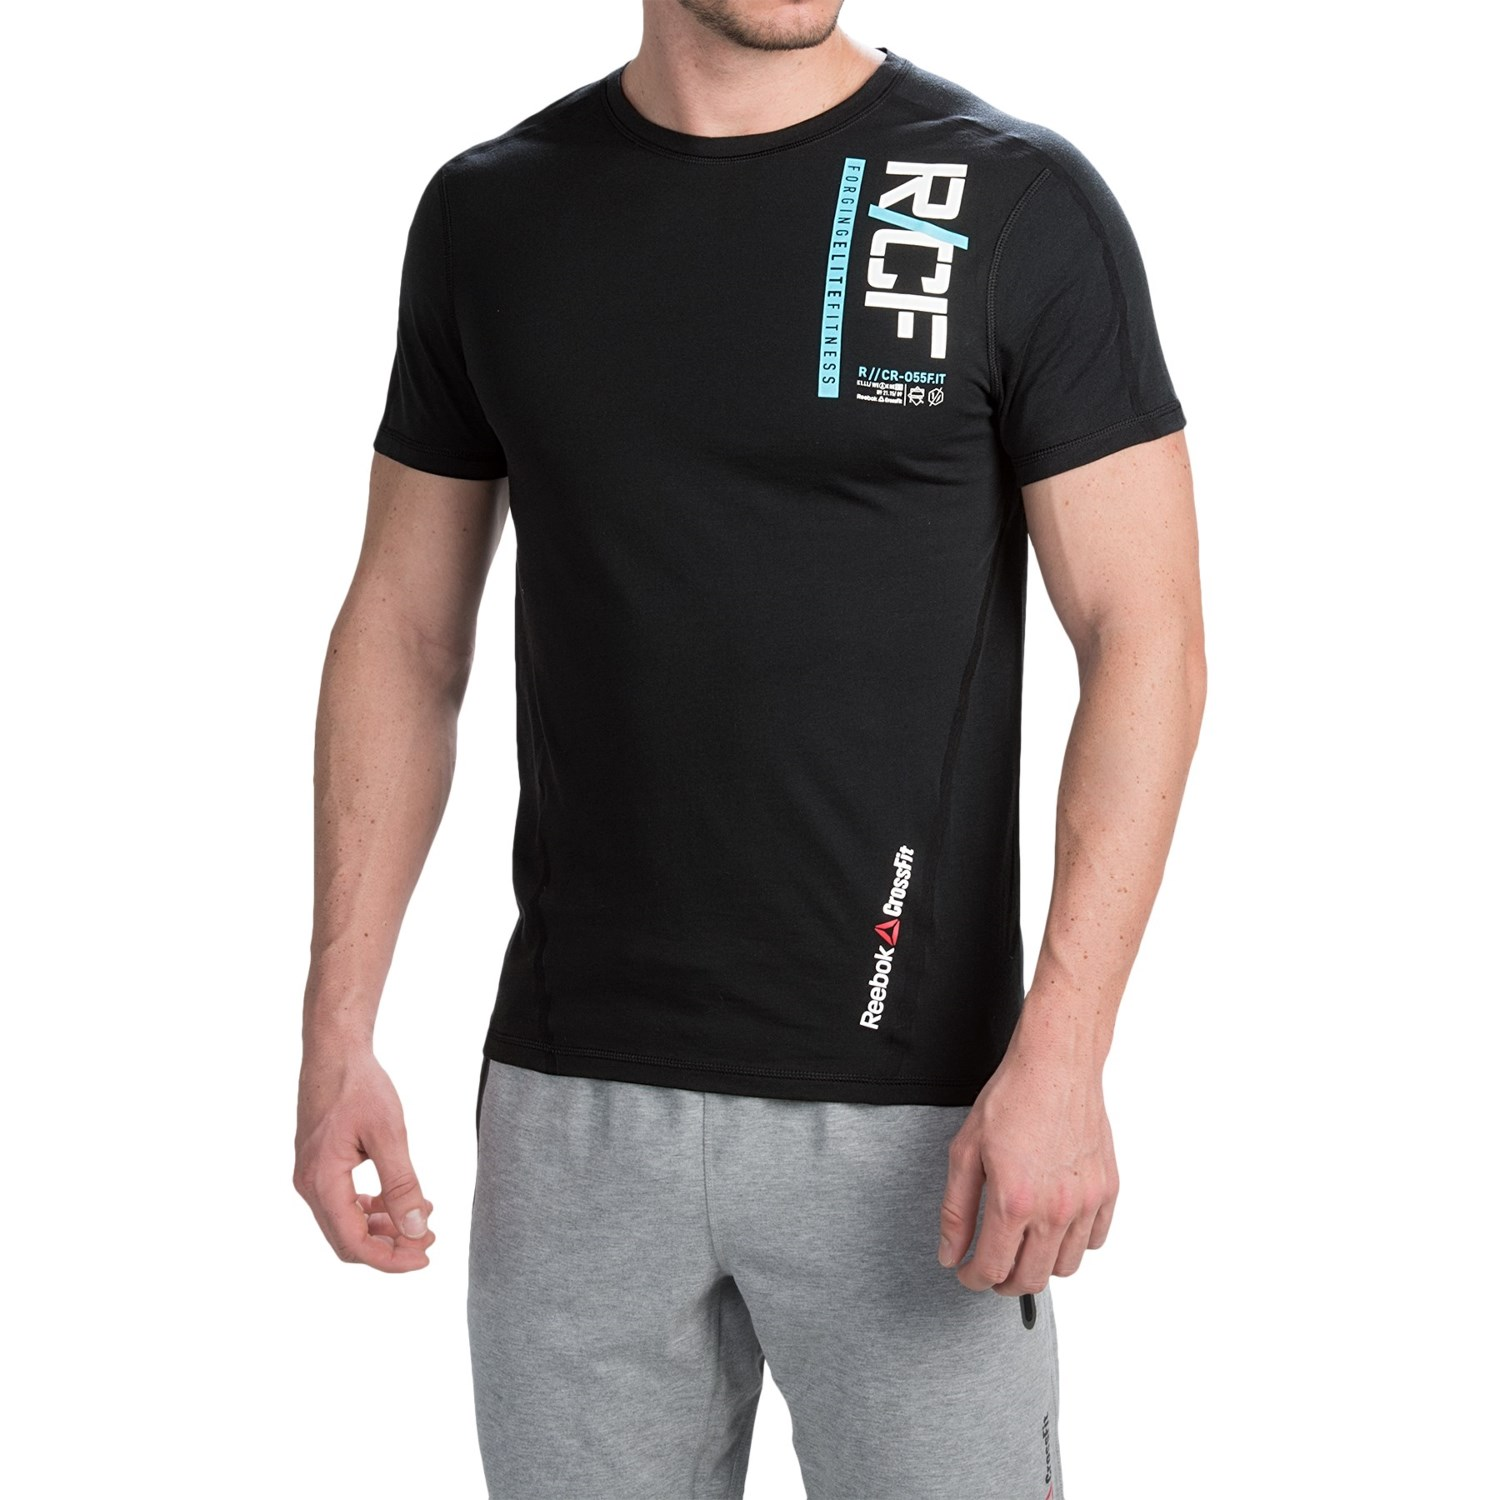 Reebok crossfit graphic t shirt for men save 69 Fitness shirts for men